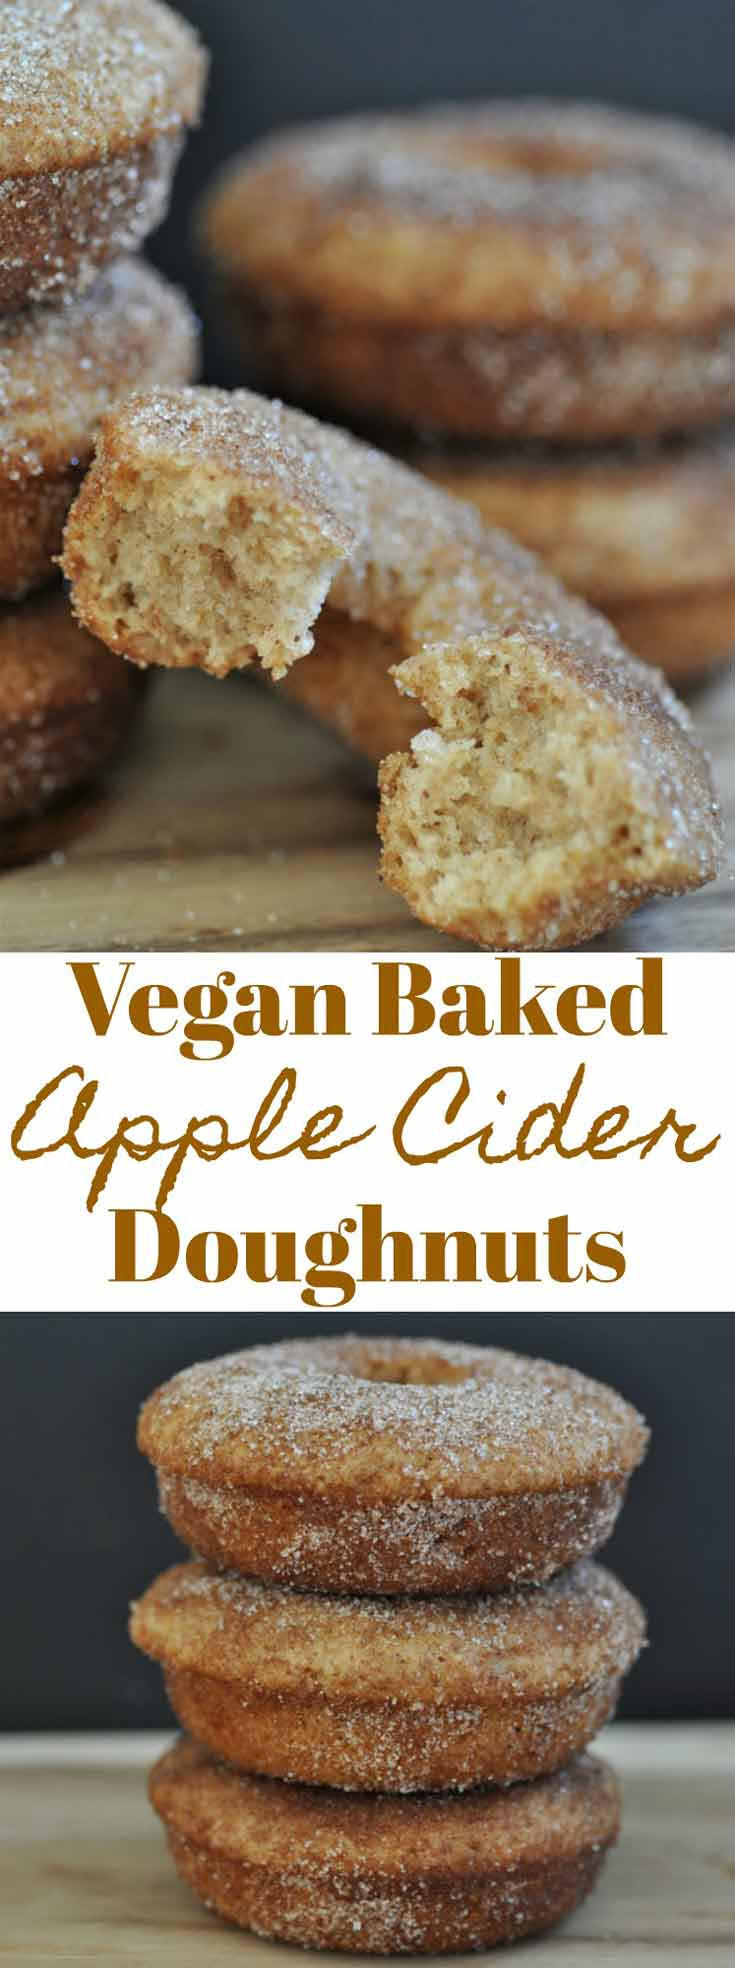 Baked Vegan Apple Cider Doughnuts! Easy to make and great for a fall dessert or breakfast.